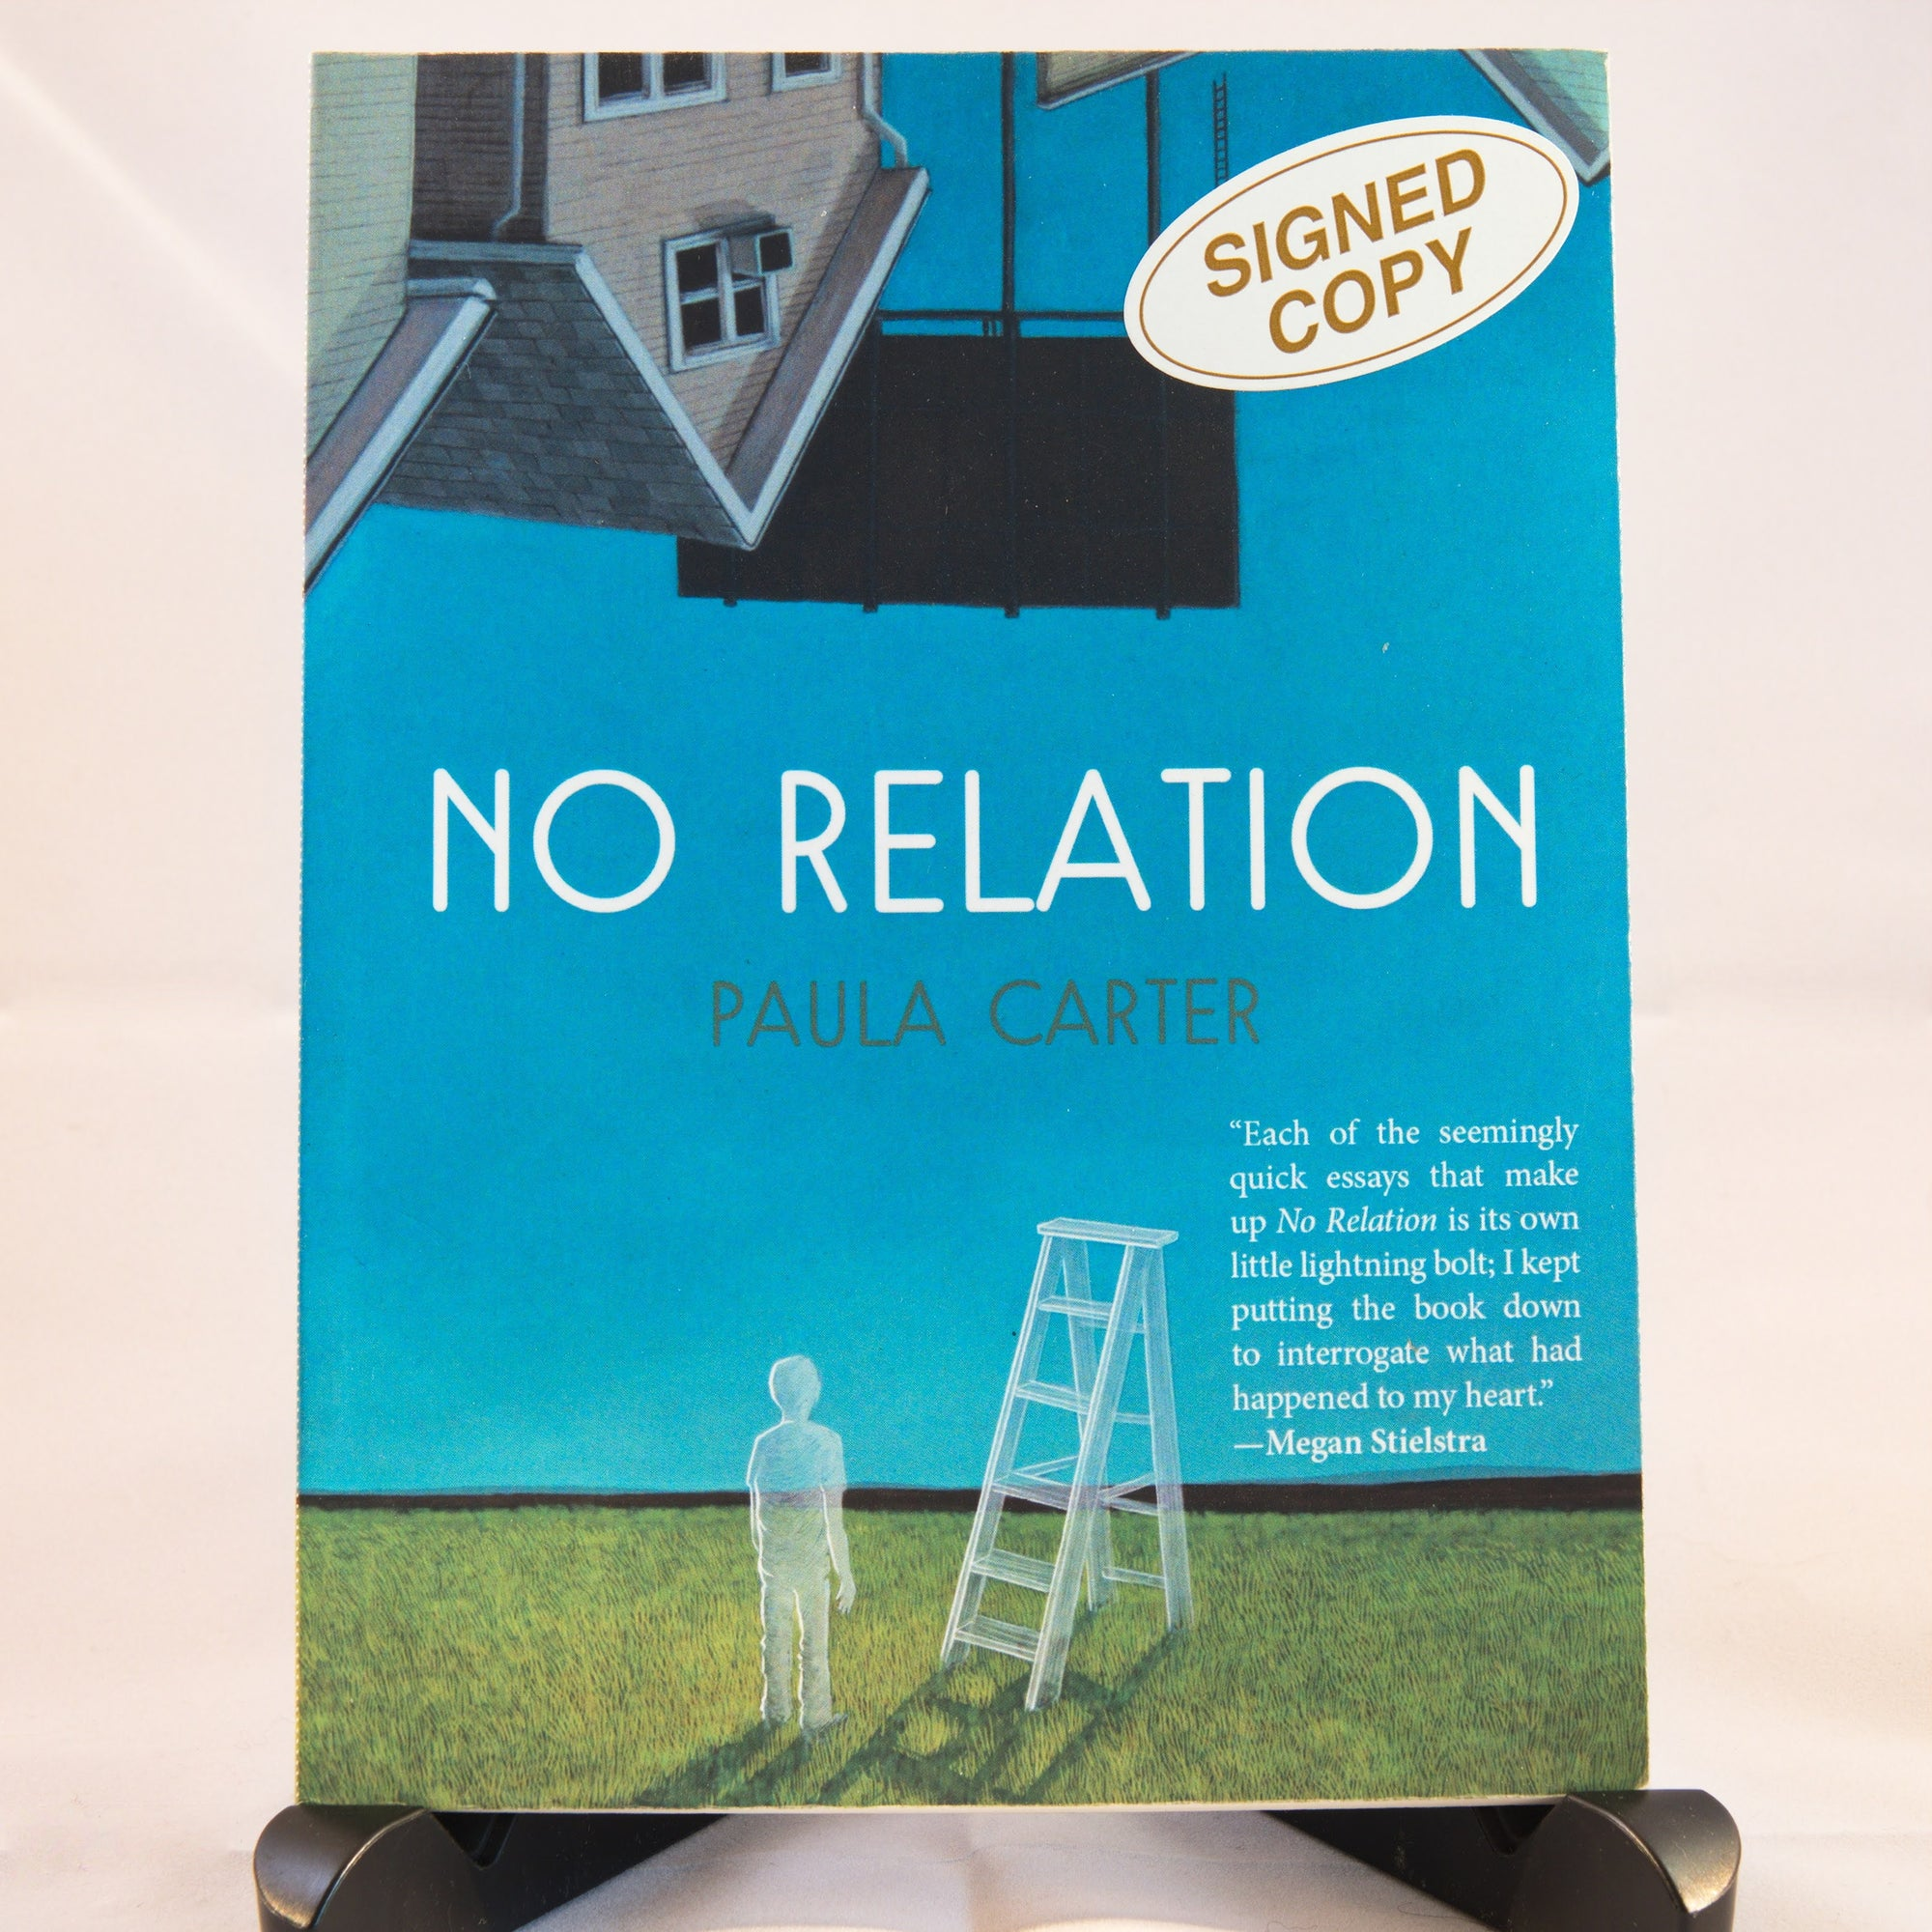 No Relation by author Paula Carter - signed edition (IS)